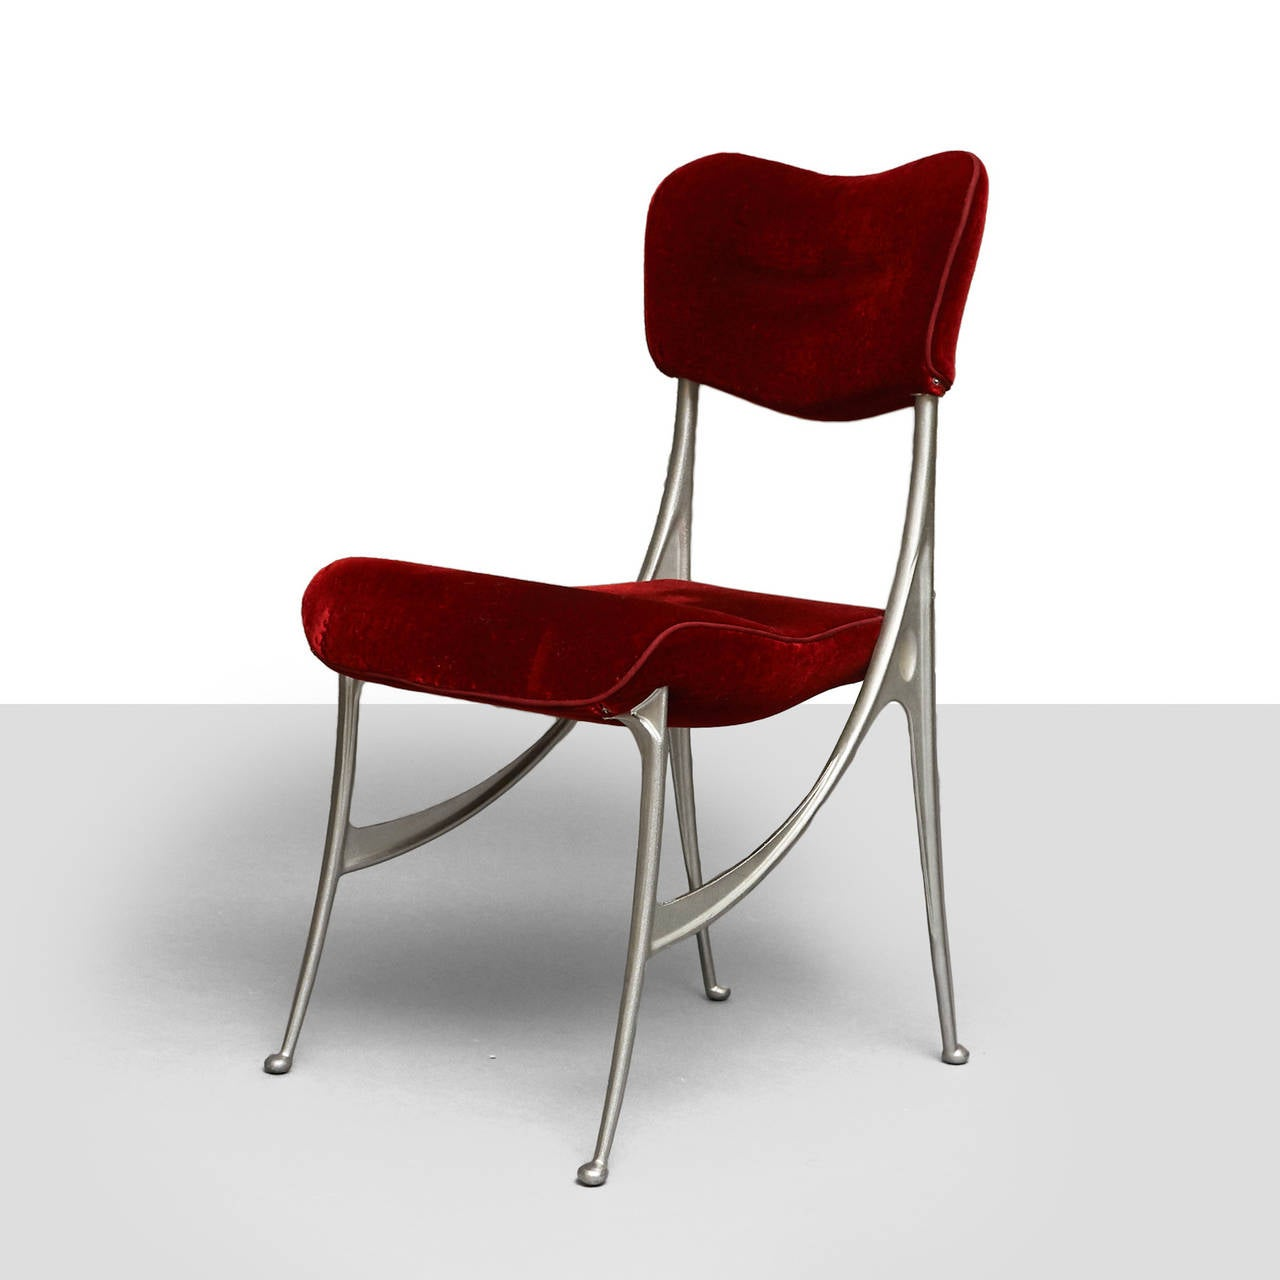 A set of dining chairs by Oscar Tusquets for Driade. Four side chairs and two armchairs with ribbon curl armrests. Curvilinear frame of cast aluminum, covered with red velvet. Designed in 1987.